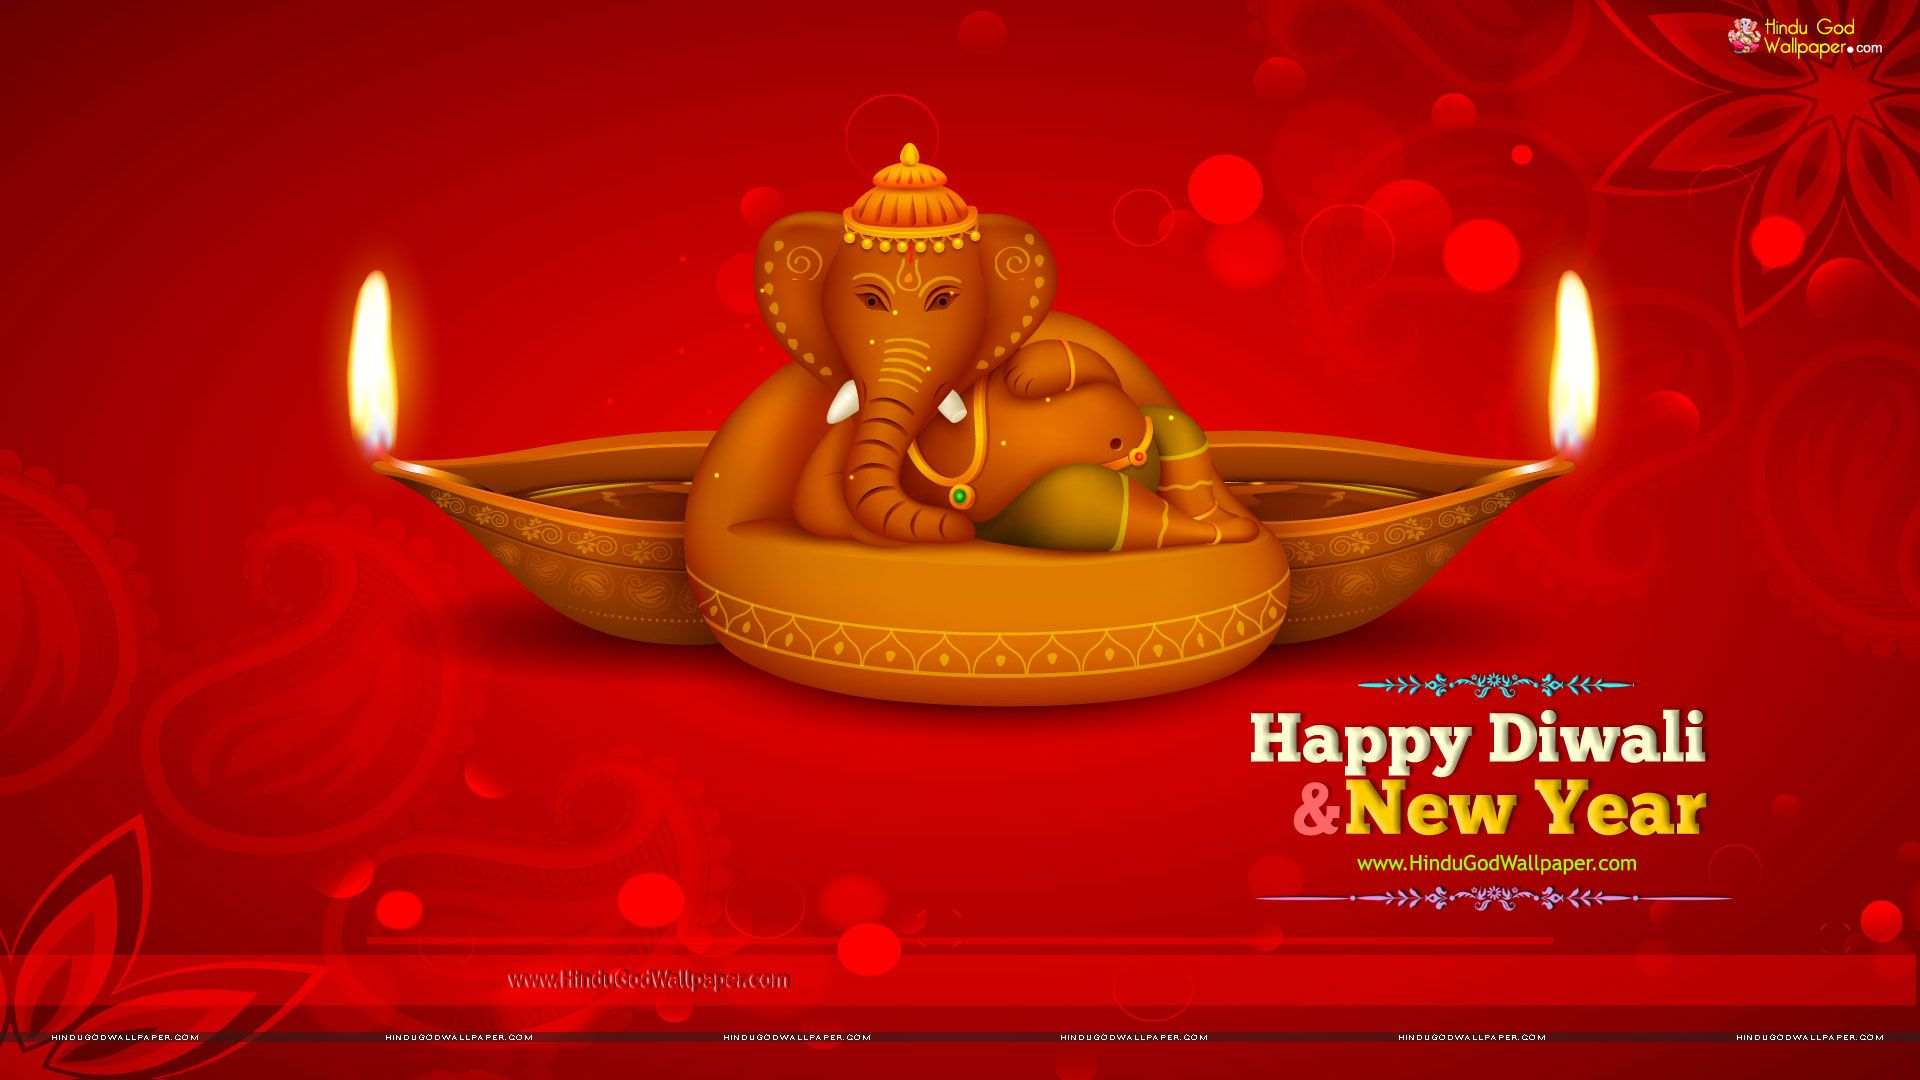 happy diwali and a prosperous new year ahead new year wallpaper hd diwali wallpaper